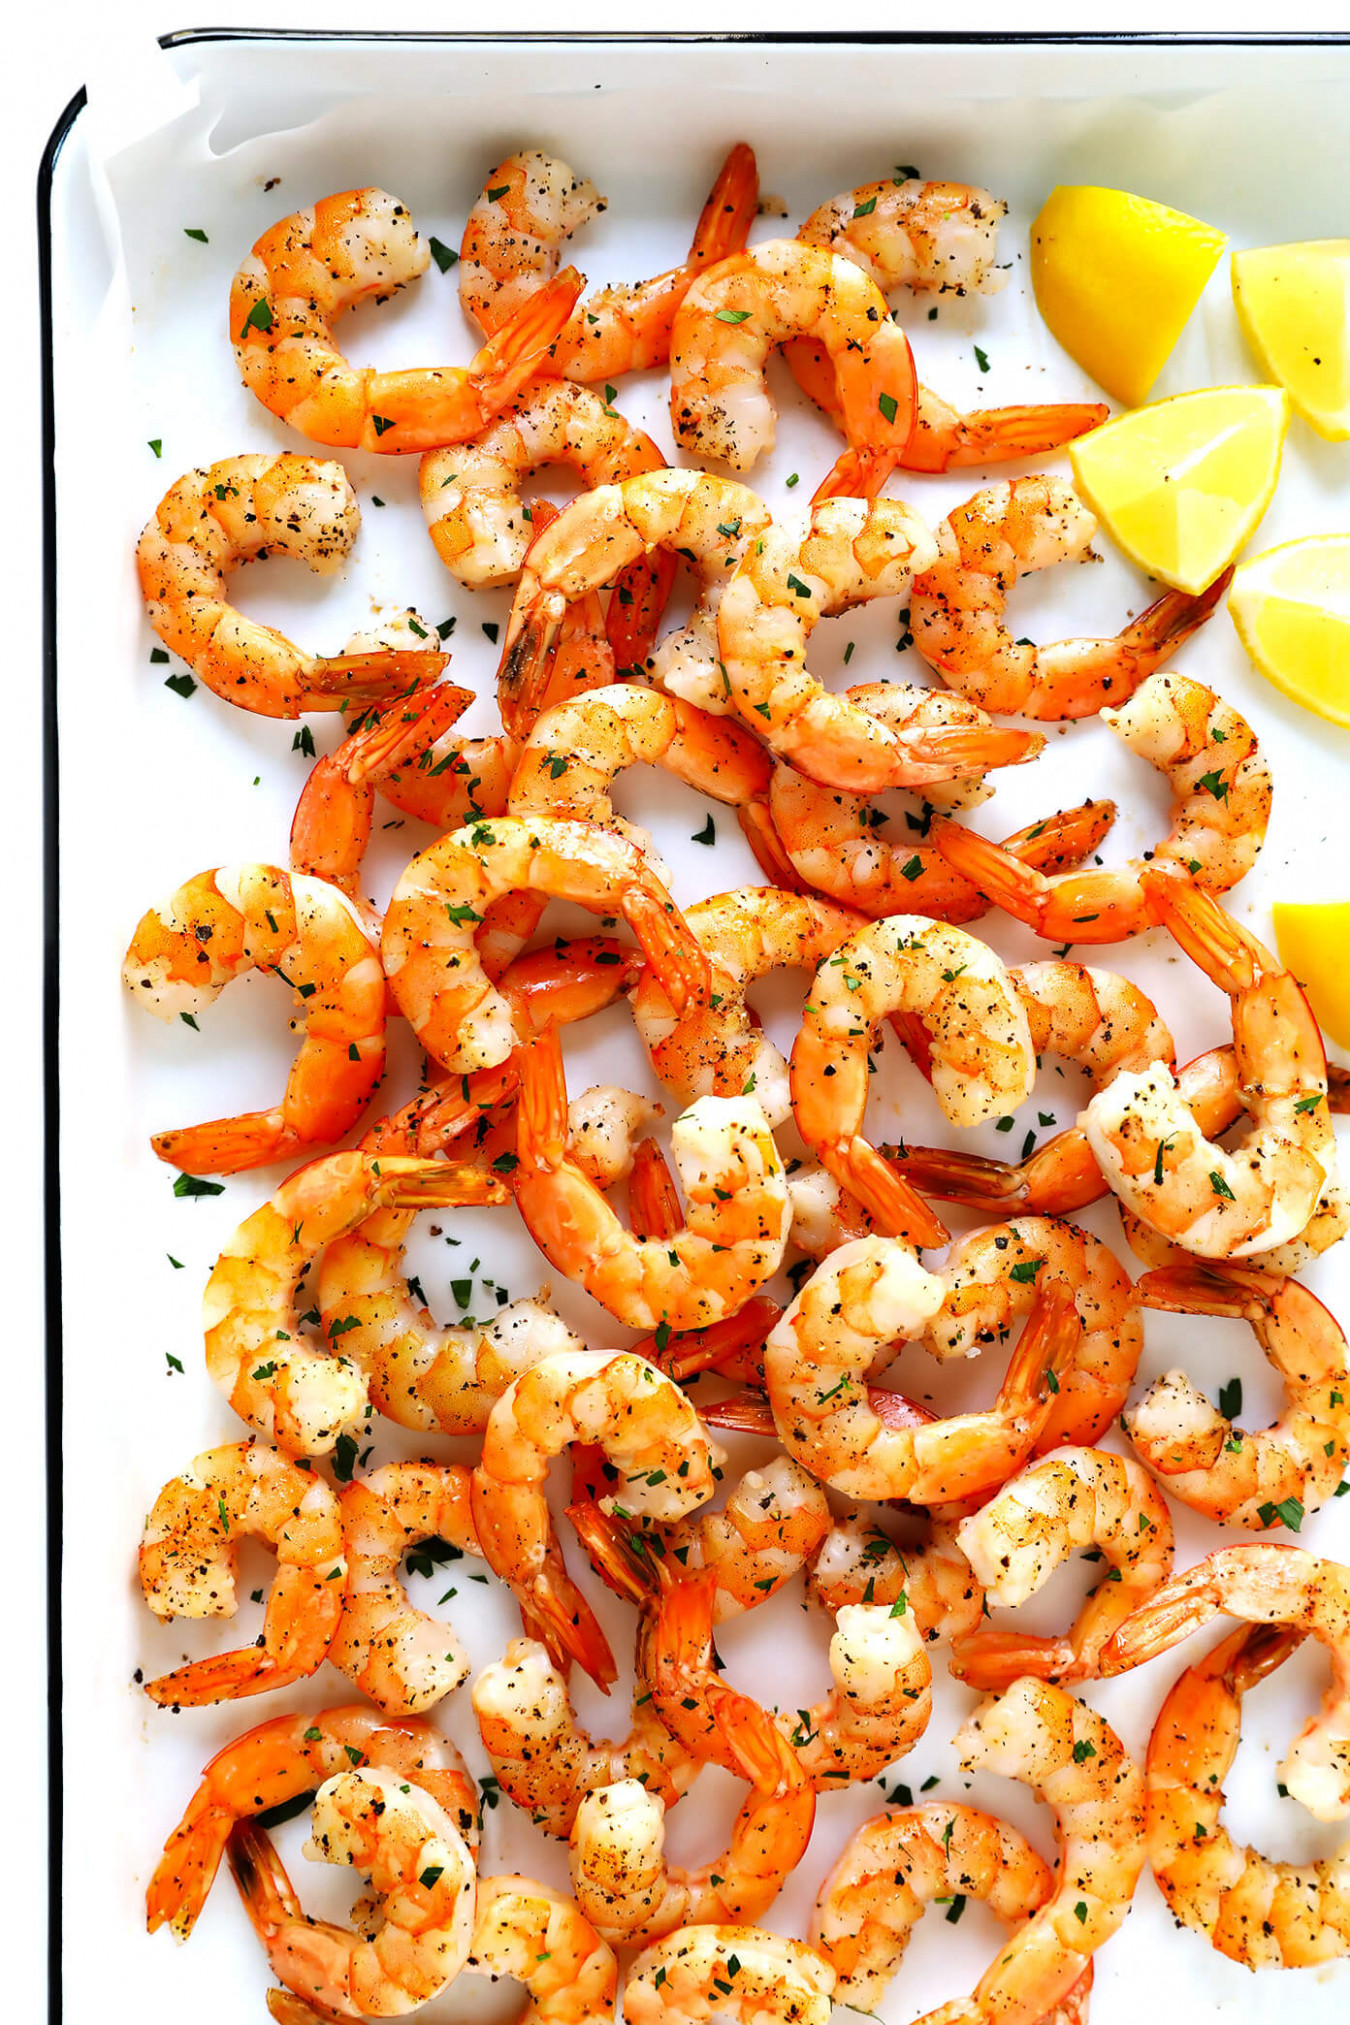 The Easiest Way To Cook Shrimp! (Baked Shrimp) - recipes with shrimp healthy